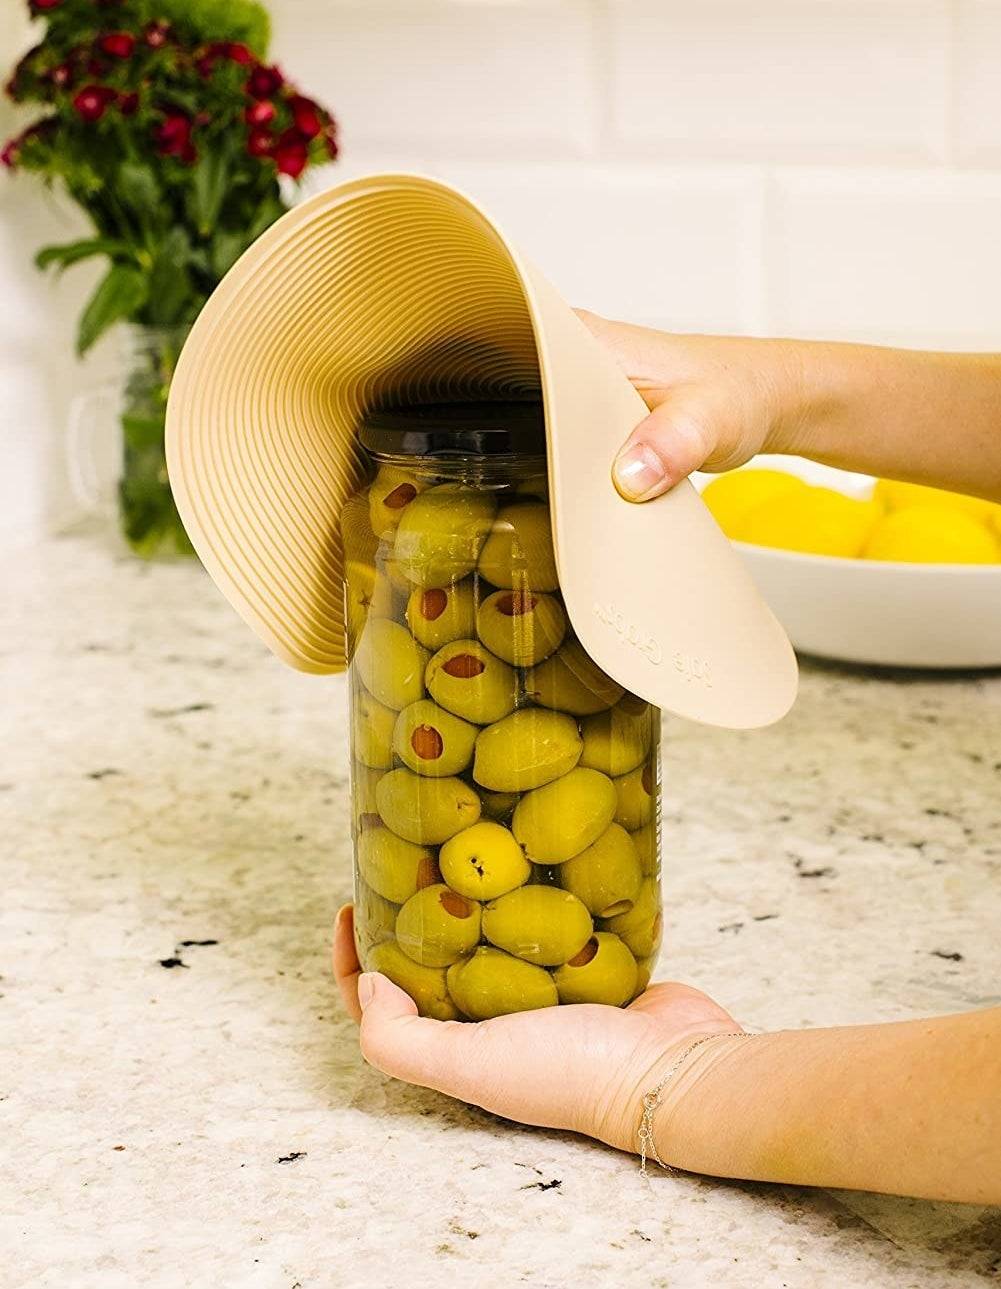 Someone using the silicone mat to open a jar of olives